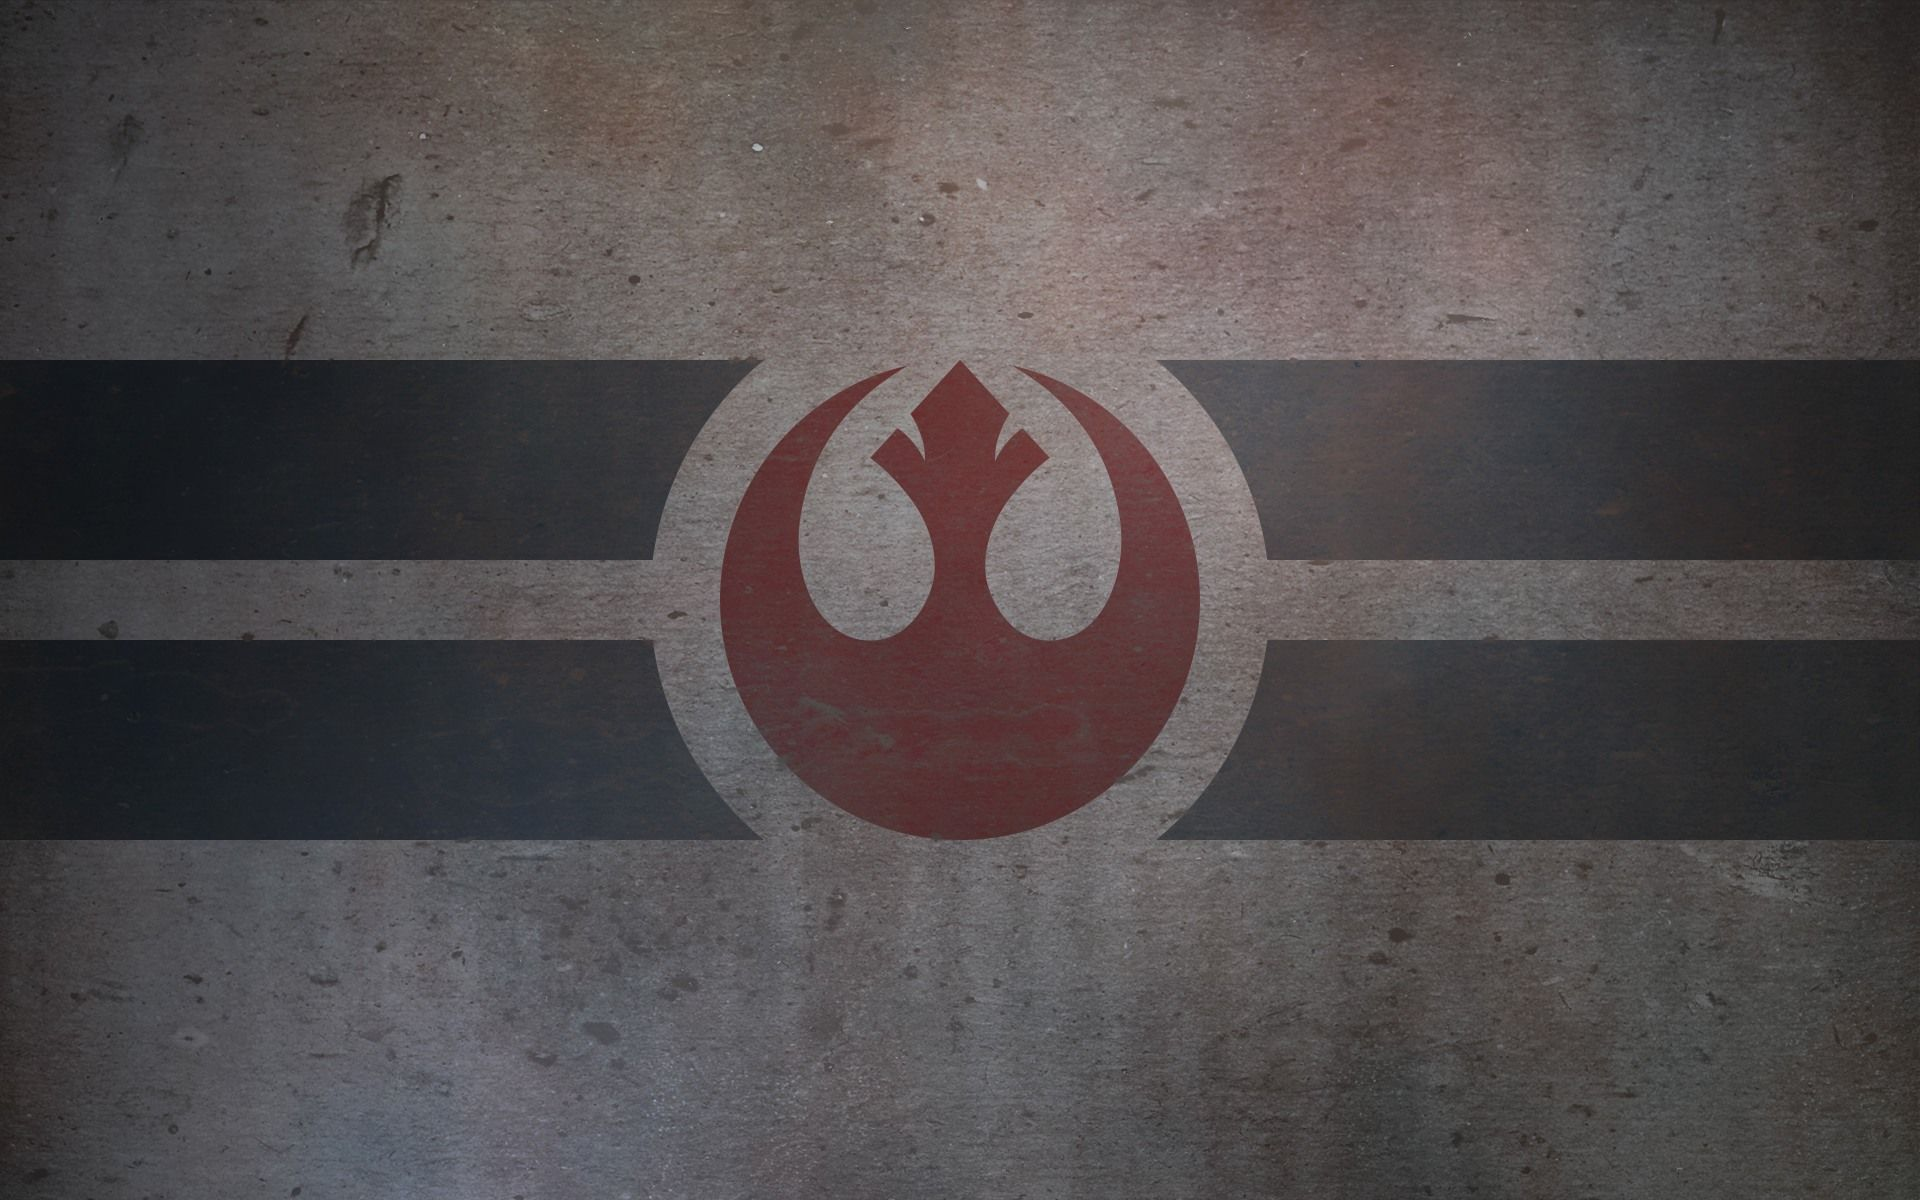 star wars rebels star wars rebellion logo wallpaper comics